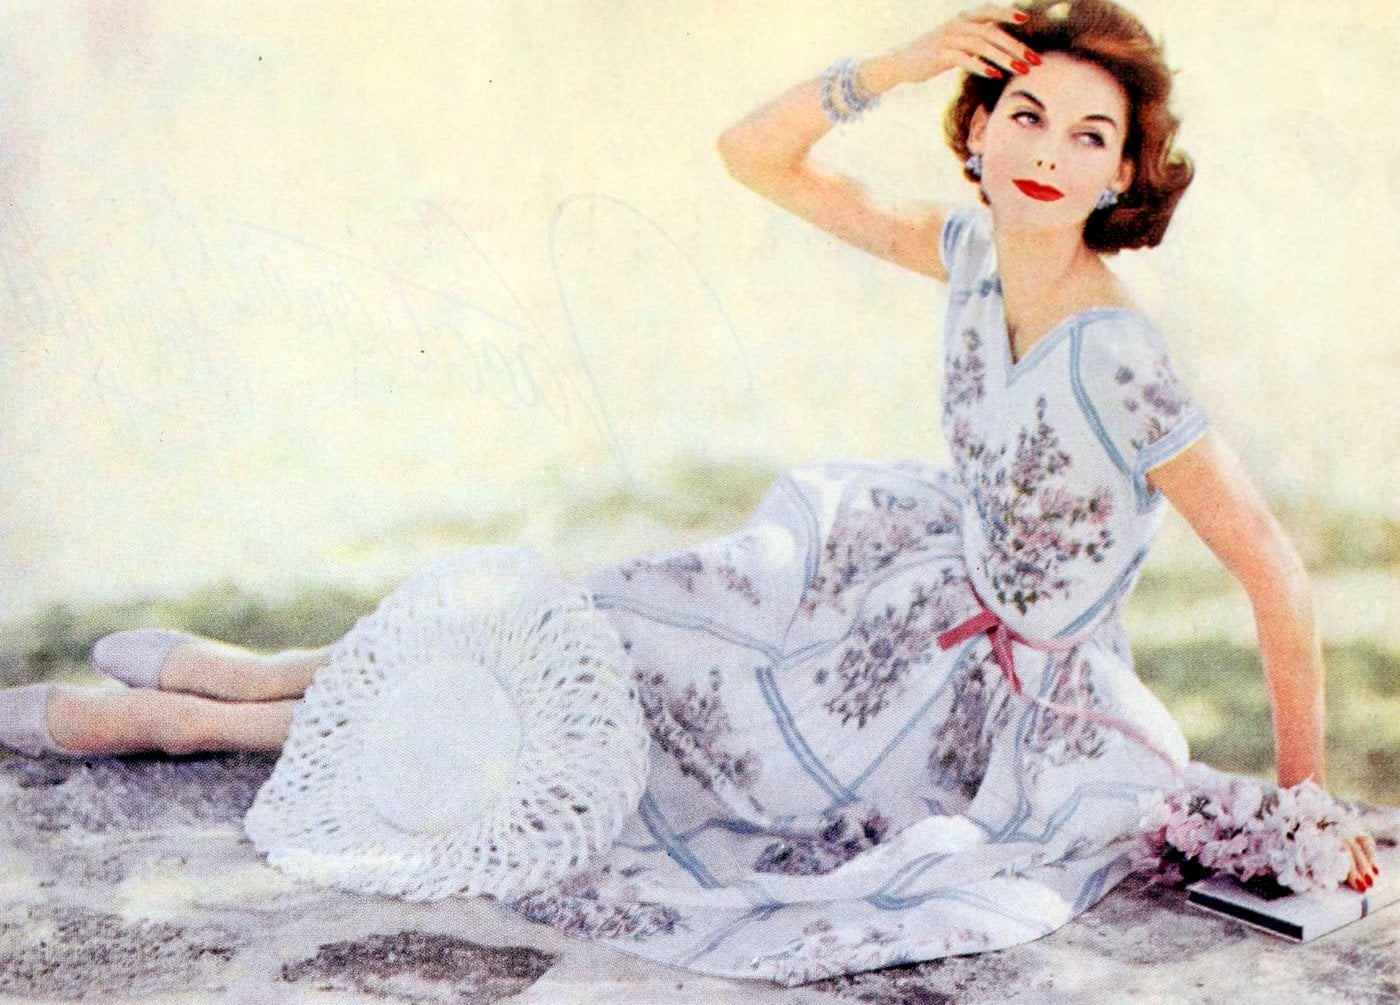 Vintage 1950s woman in a dress on the ground